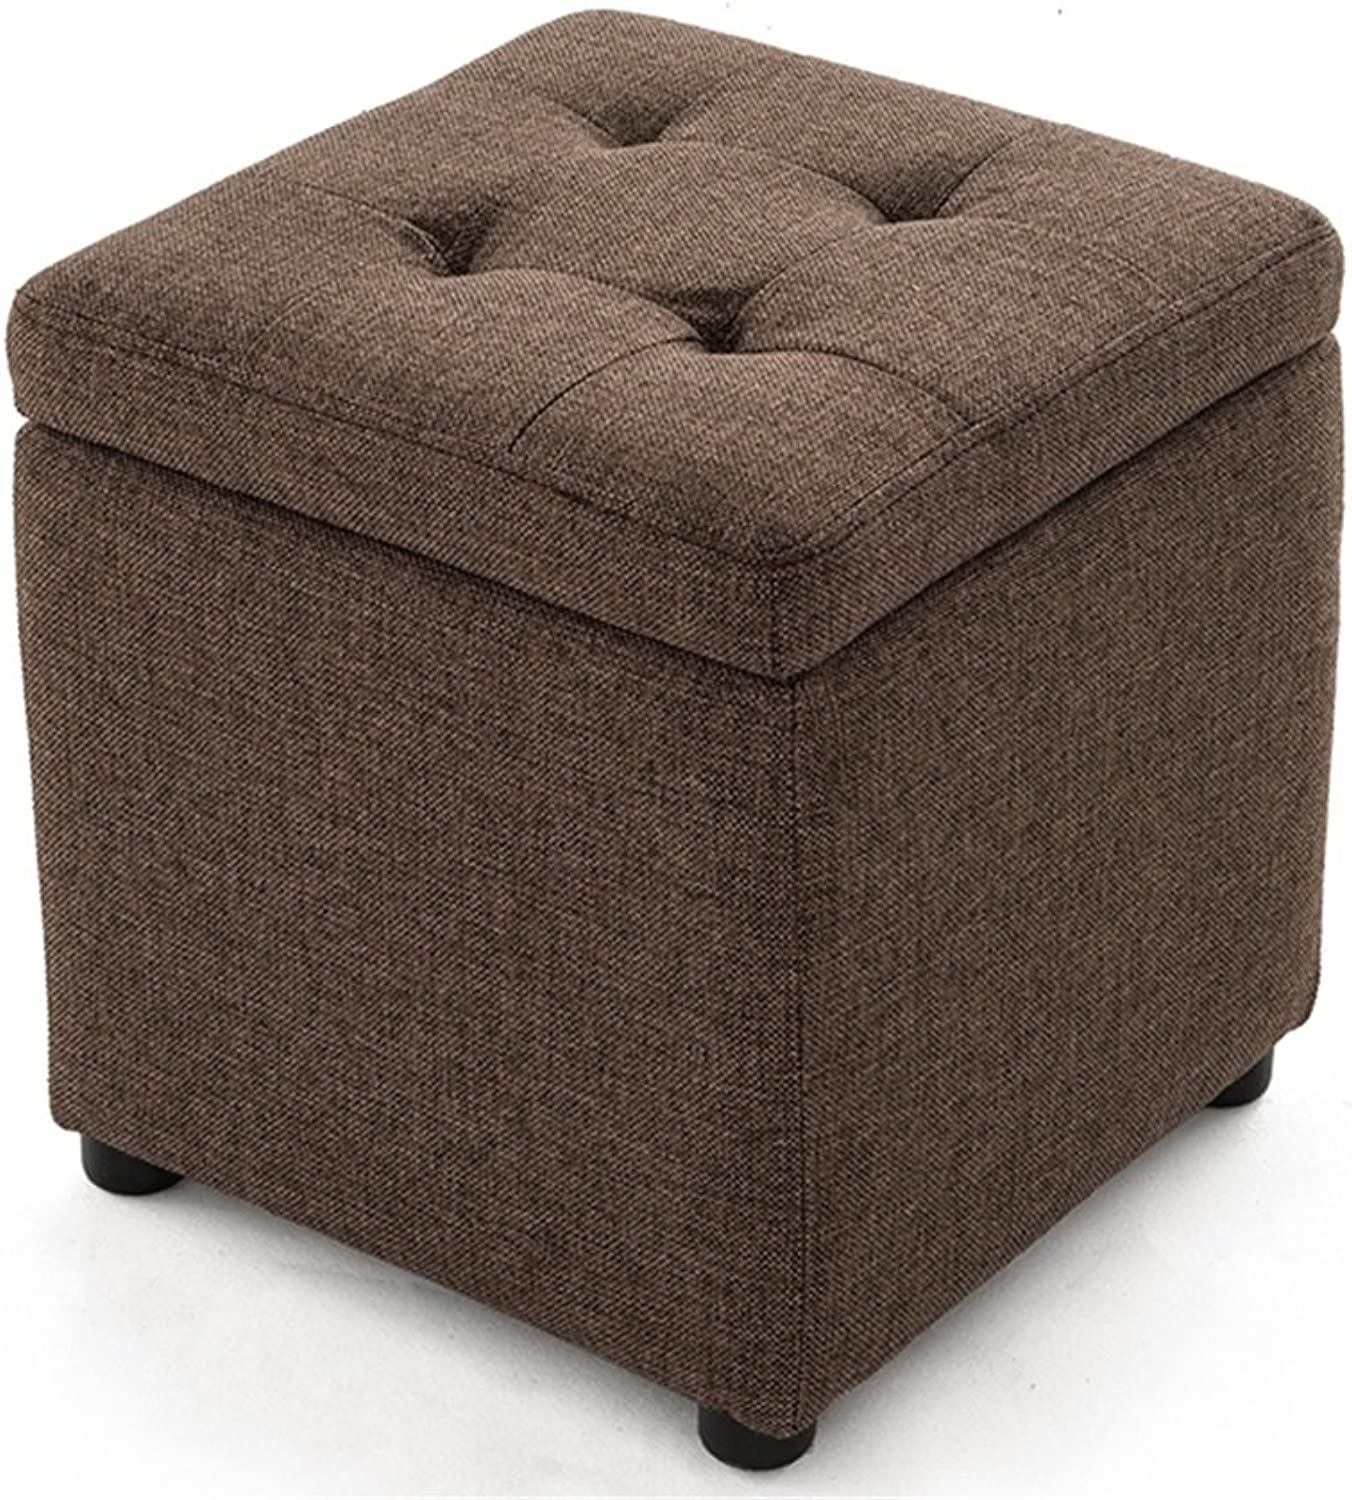 Upholstered Small Stool Pouf Storage Beanbag Footrest Linen Fabric Brown Footstool Storage Stool Sofa Dressing Change shoes Stool Sturdy and Beautiful (Size   40cm40cm40cm)